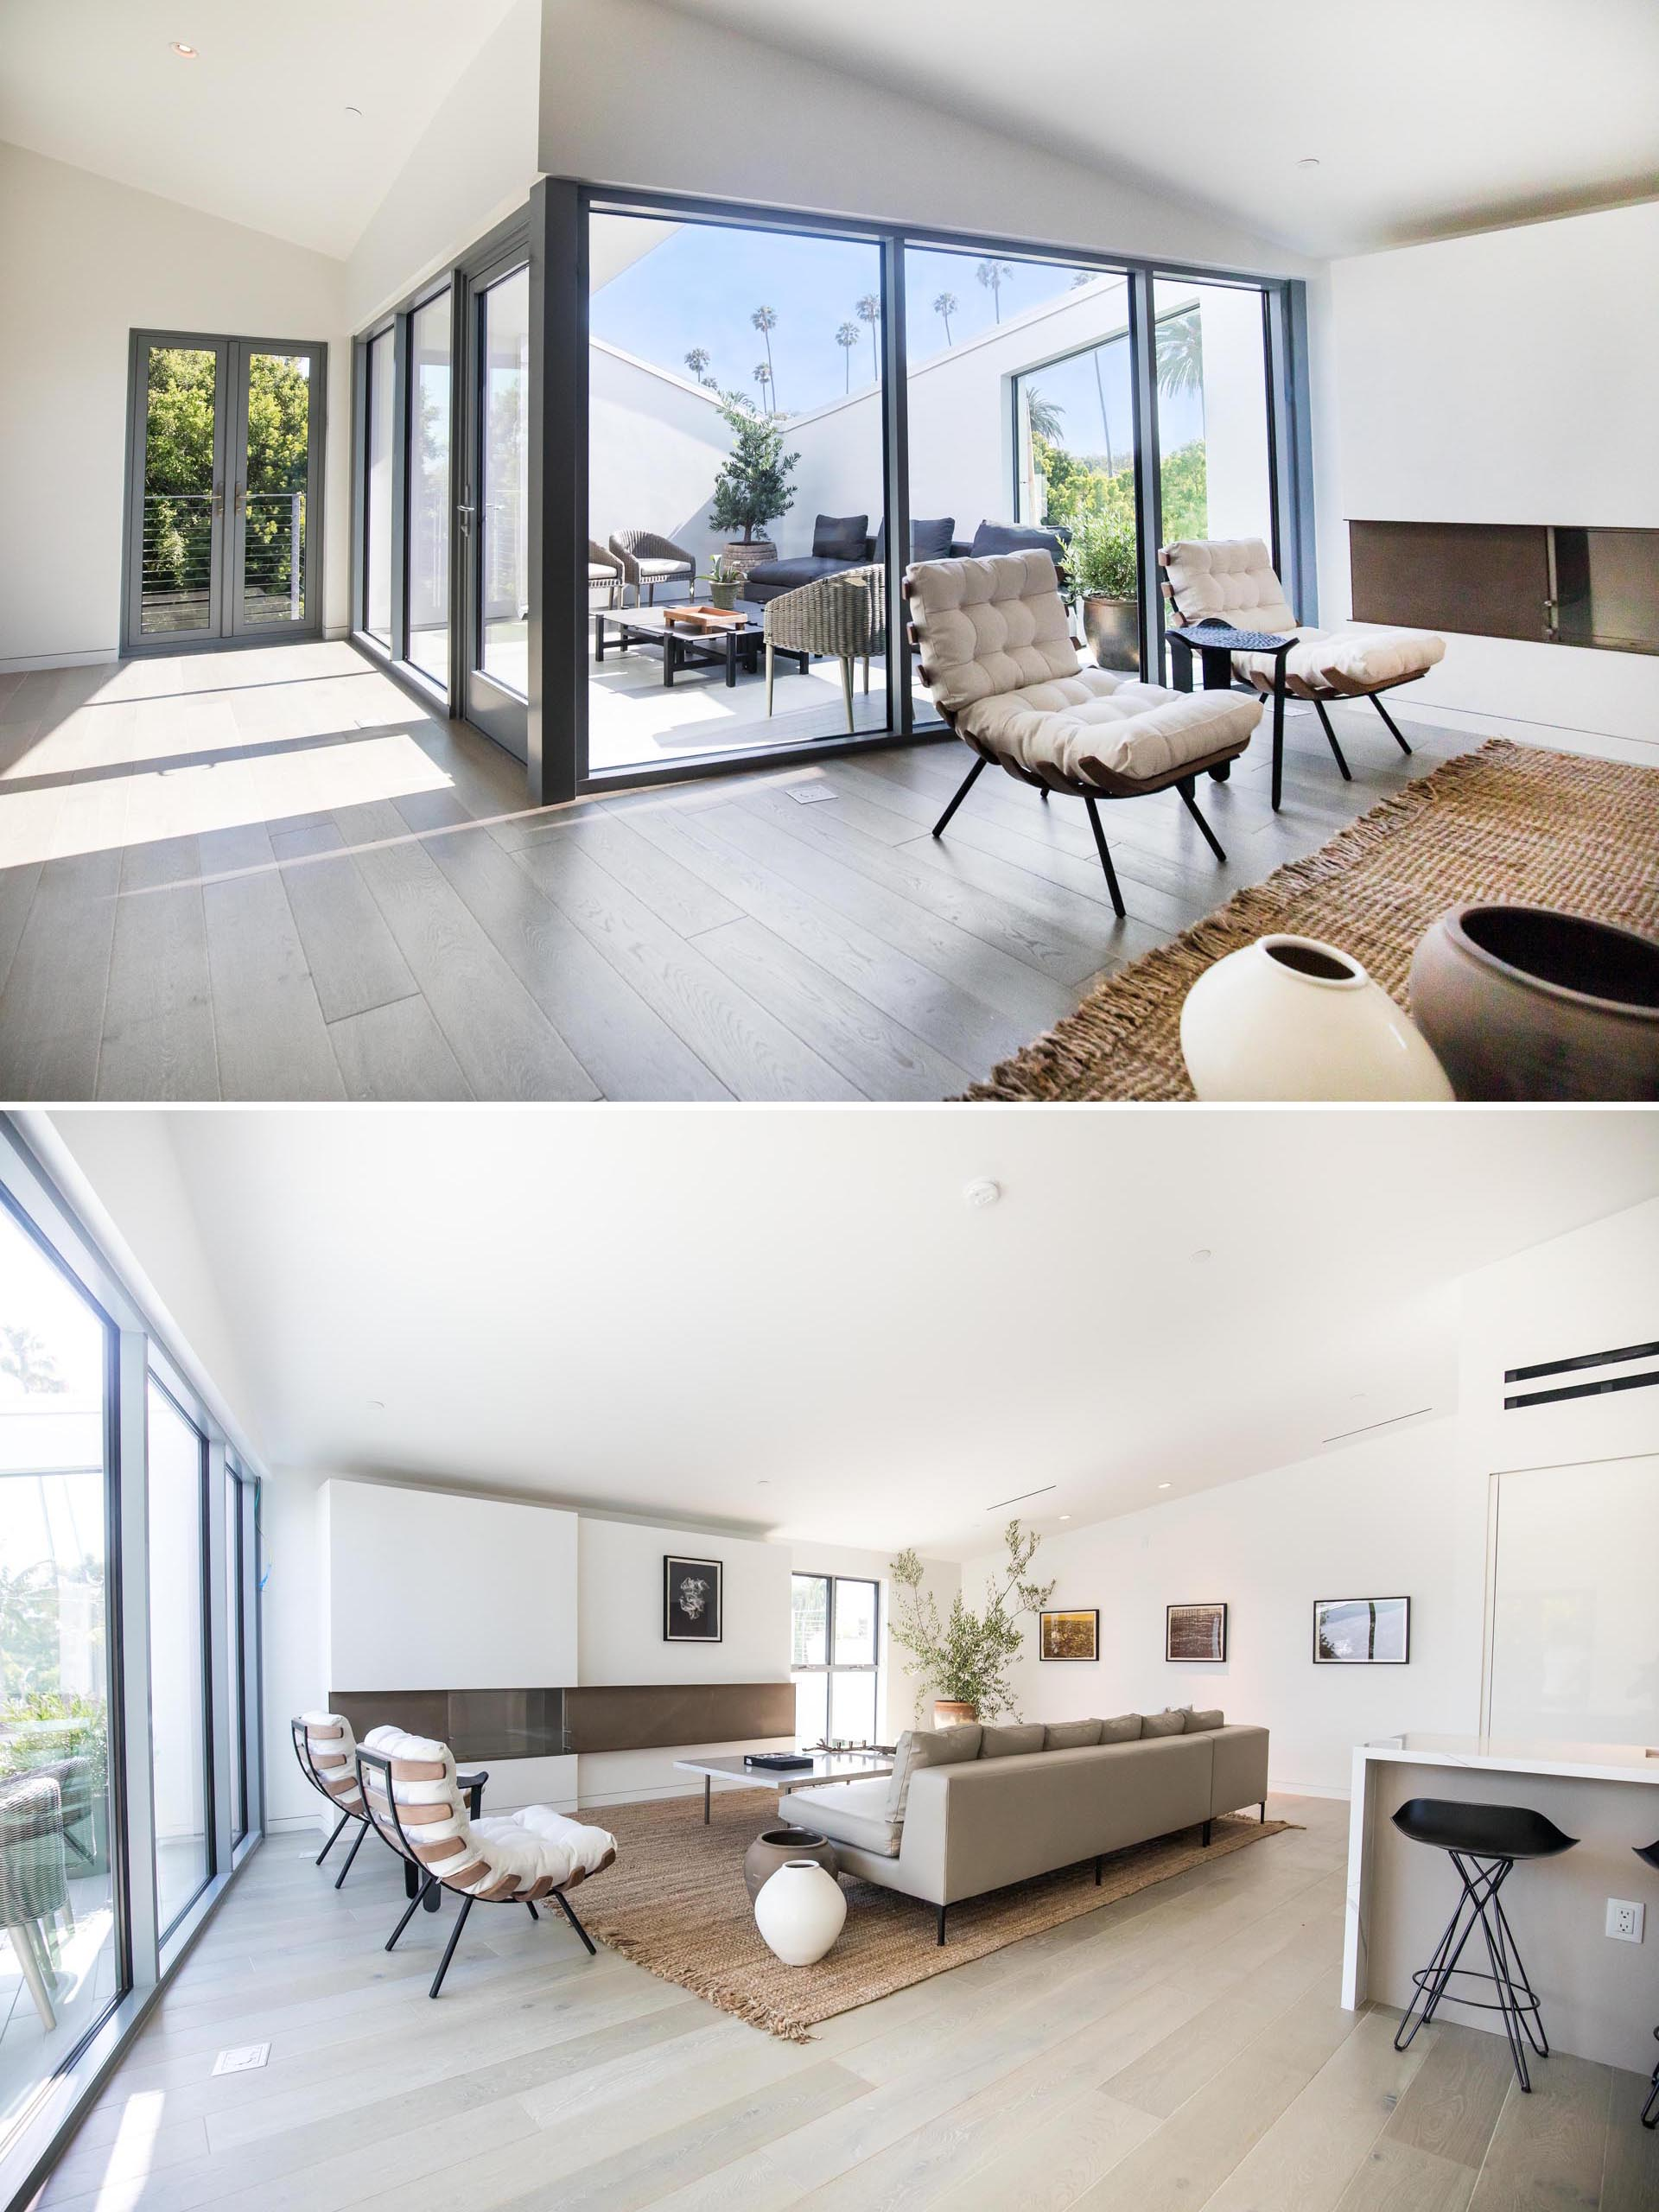 A modern living room with high ceilings, and sliding glass doors that open to a terrace.